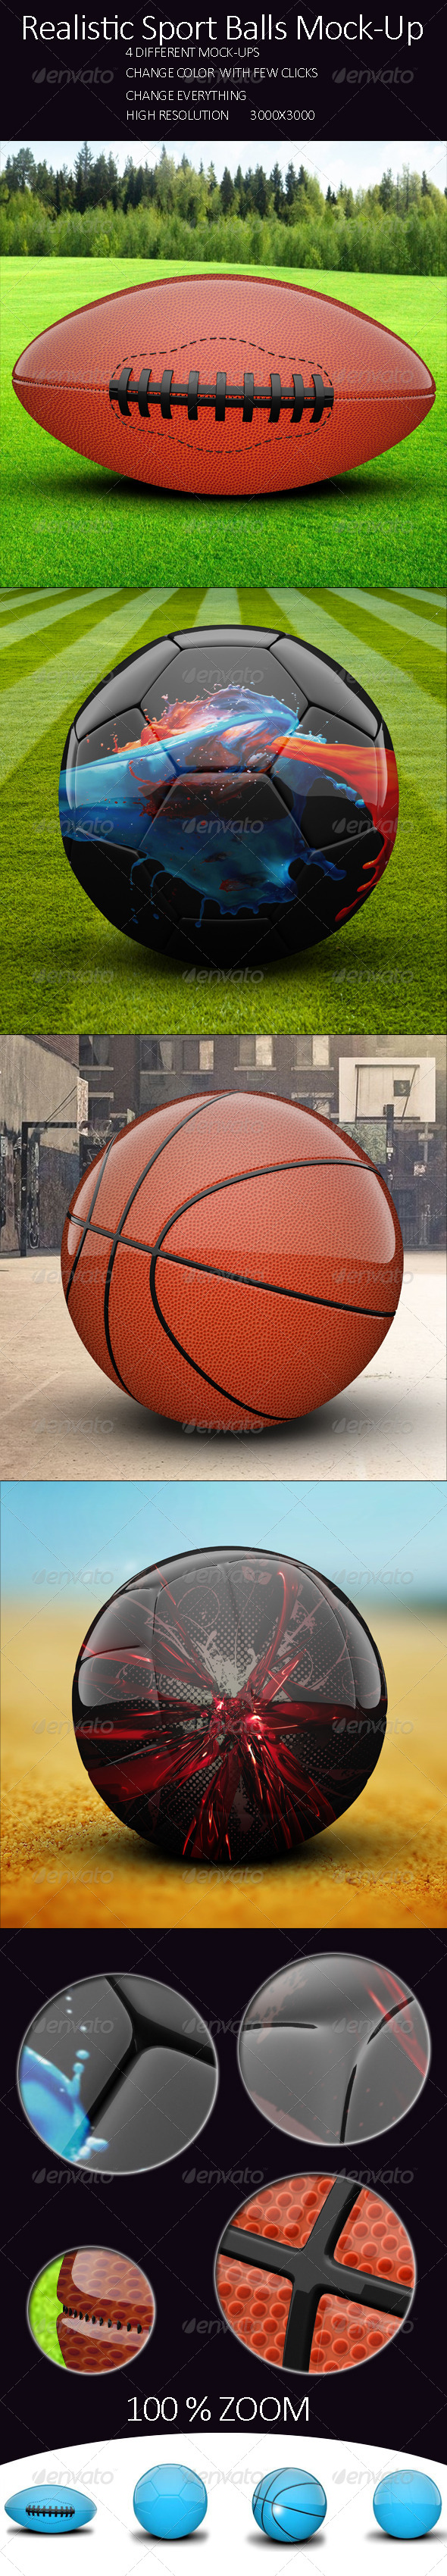 GraphicRiver Realistic Sport Balls Mock Up 8006900